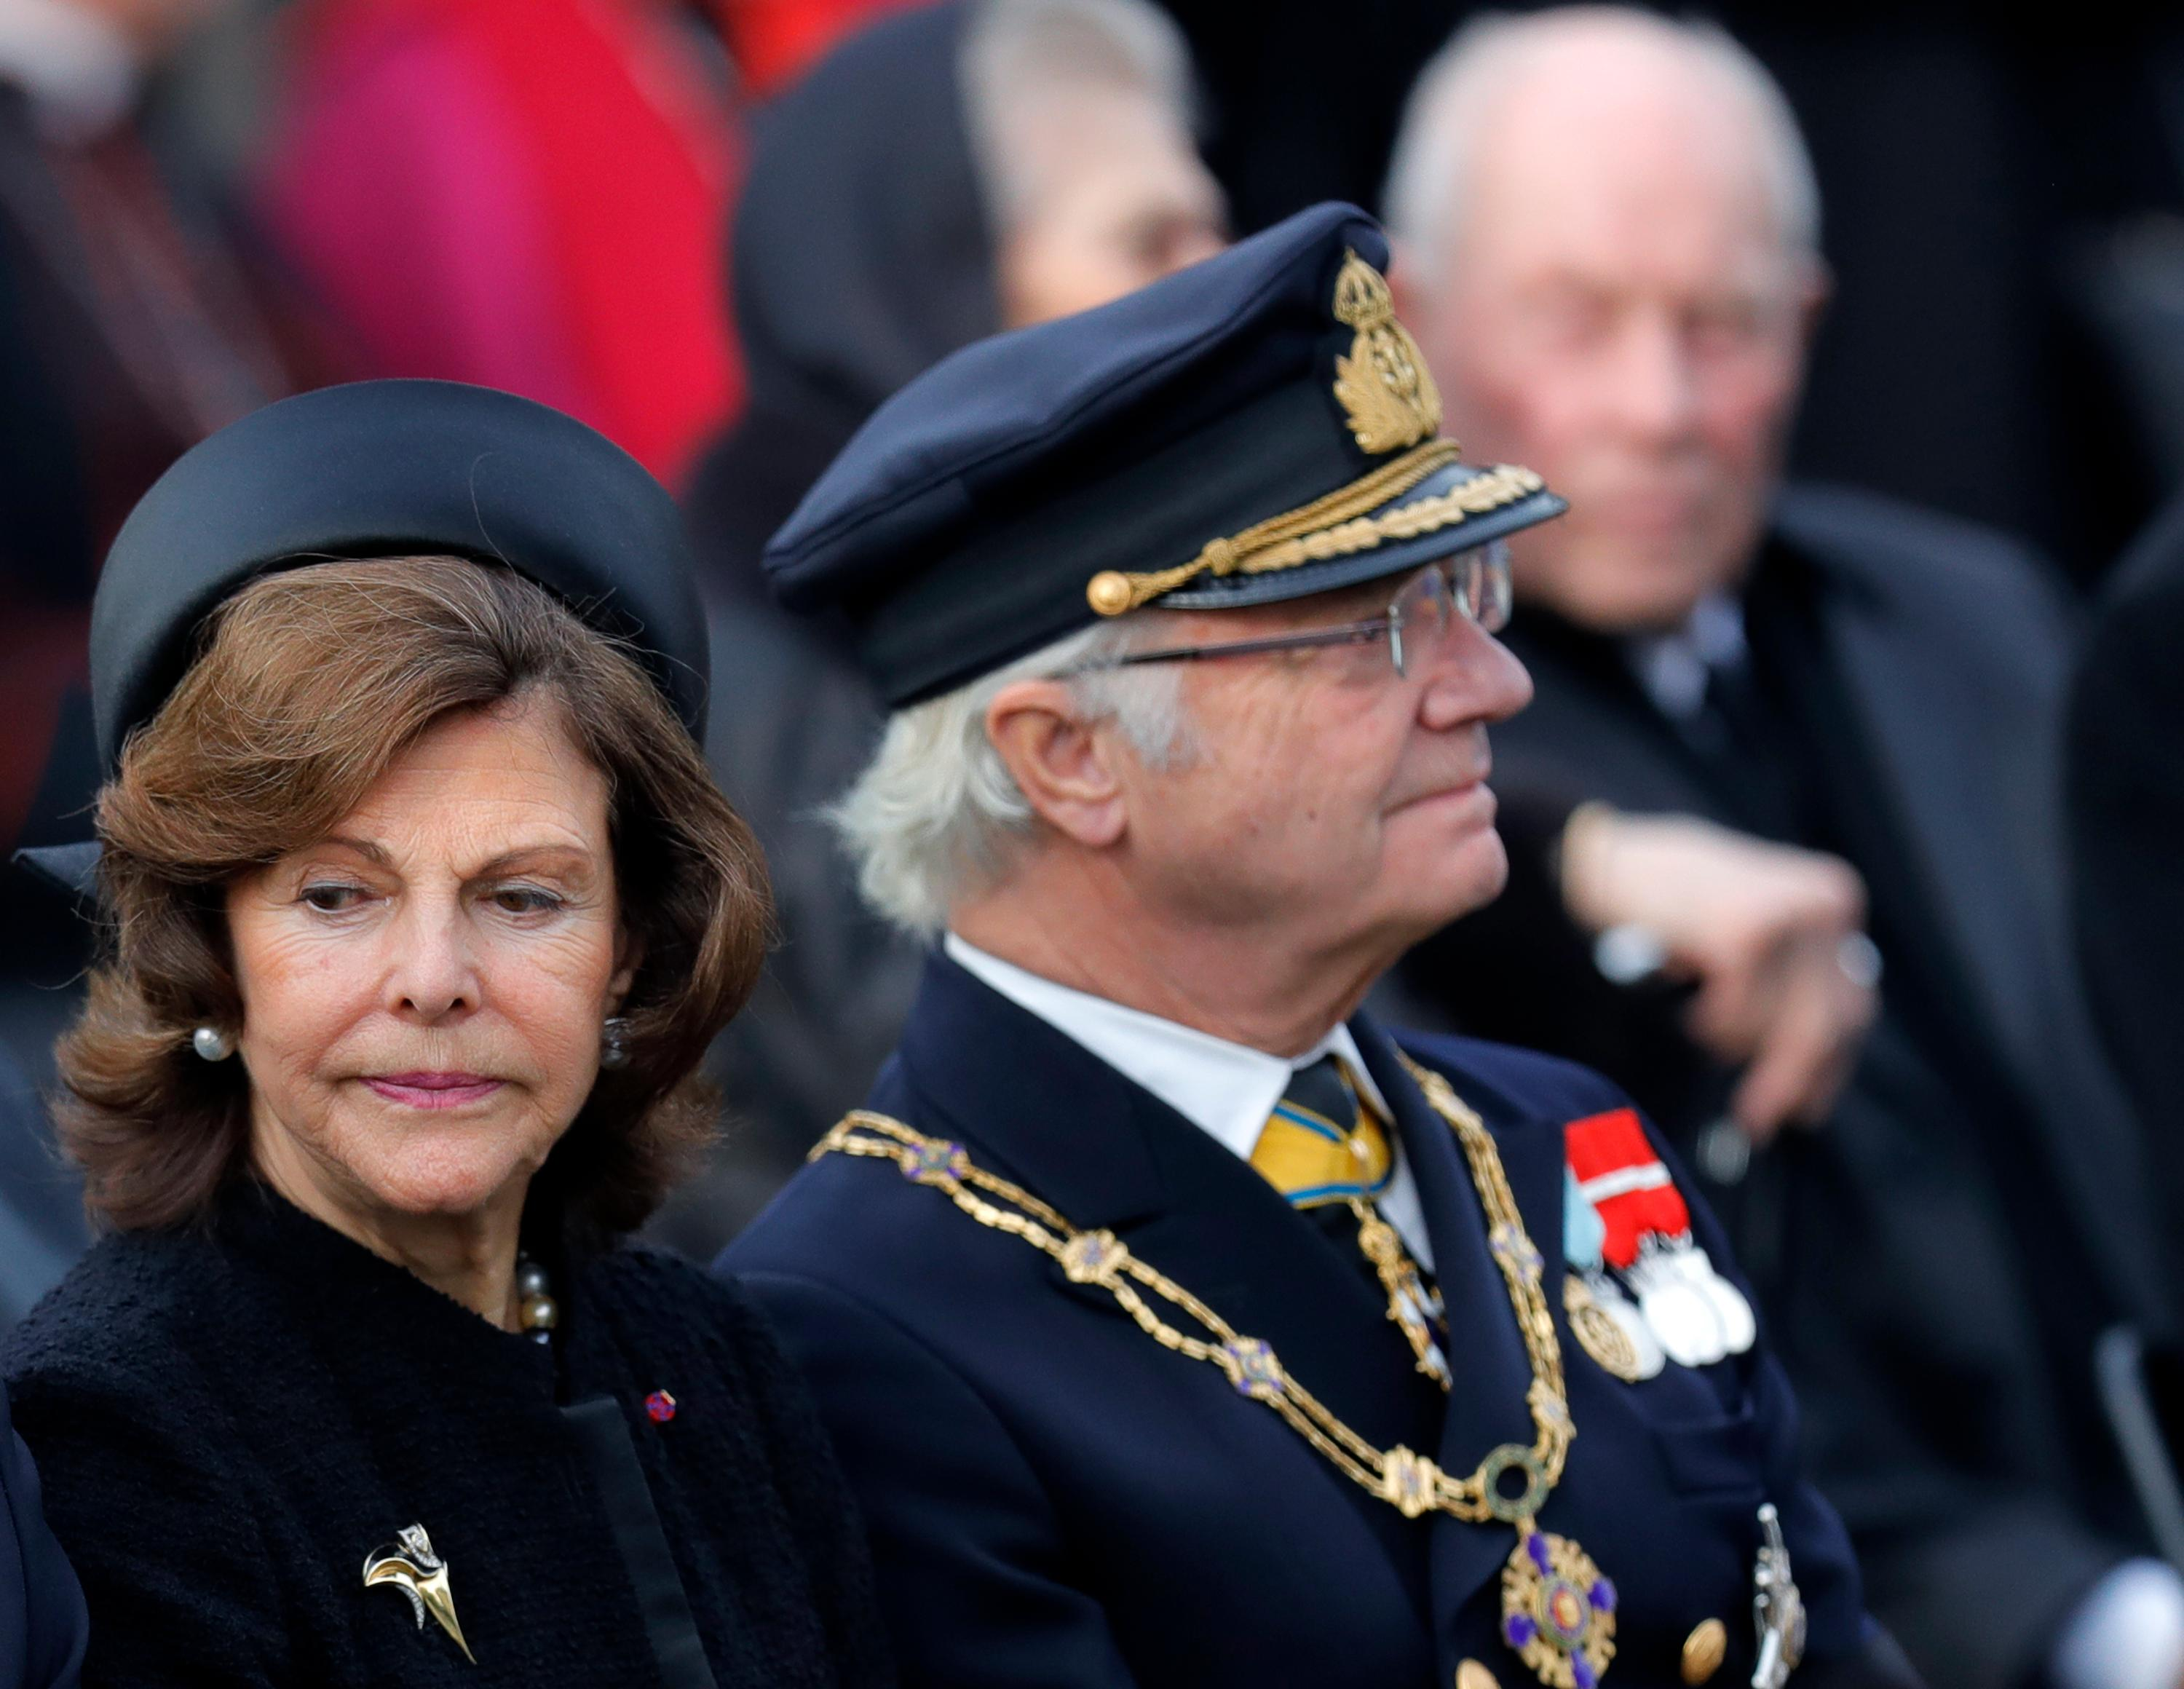 Sweden's King Carl XVI Gustaf, right, and Queen Silvia attend the funeral ceremony in tribute to late Romanian King Michael in Bucharest, Romania, Saturday, Dec.16, 2017. Thousands waited in line to pay their respects to Former King Michael, who ruled Romania during WWII, and died on Dec. 5, 2017, aged 96, in Switzerland. (AP Photo/Vadim Ghirda)